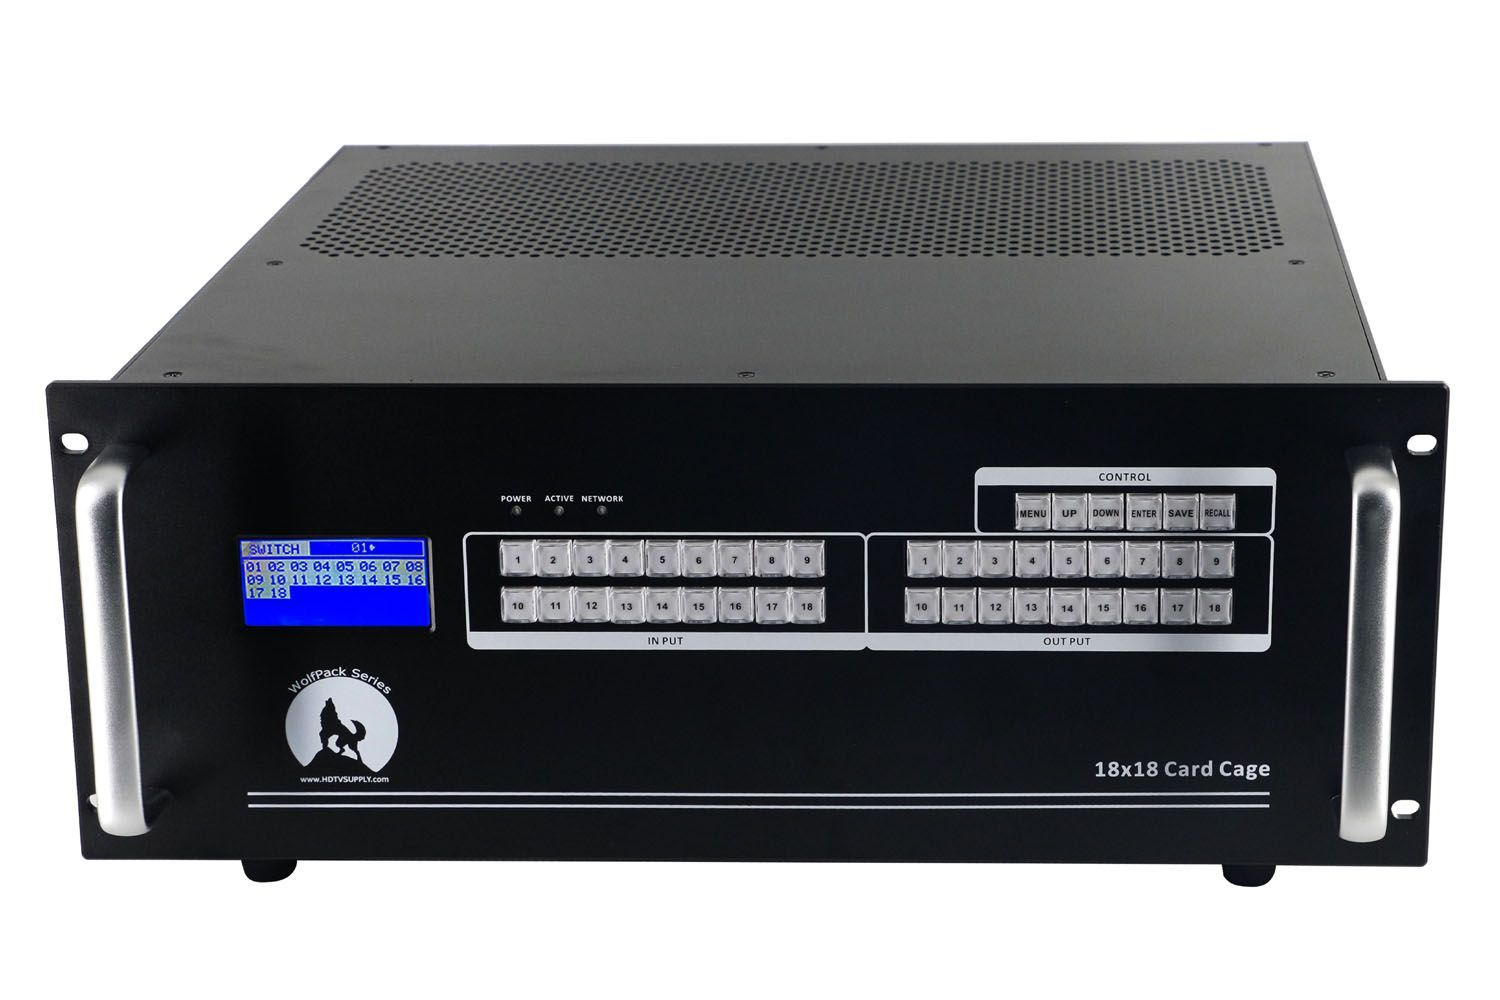 11x11 HDMI Matrix Switch with Video Wall Processor